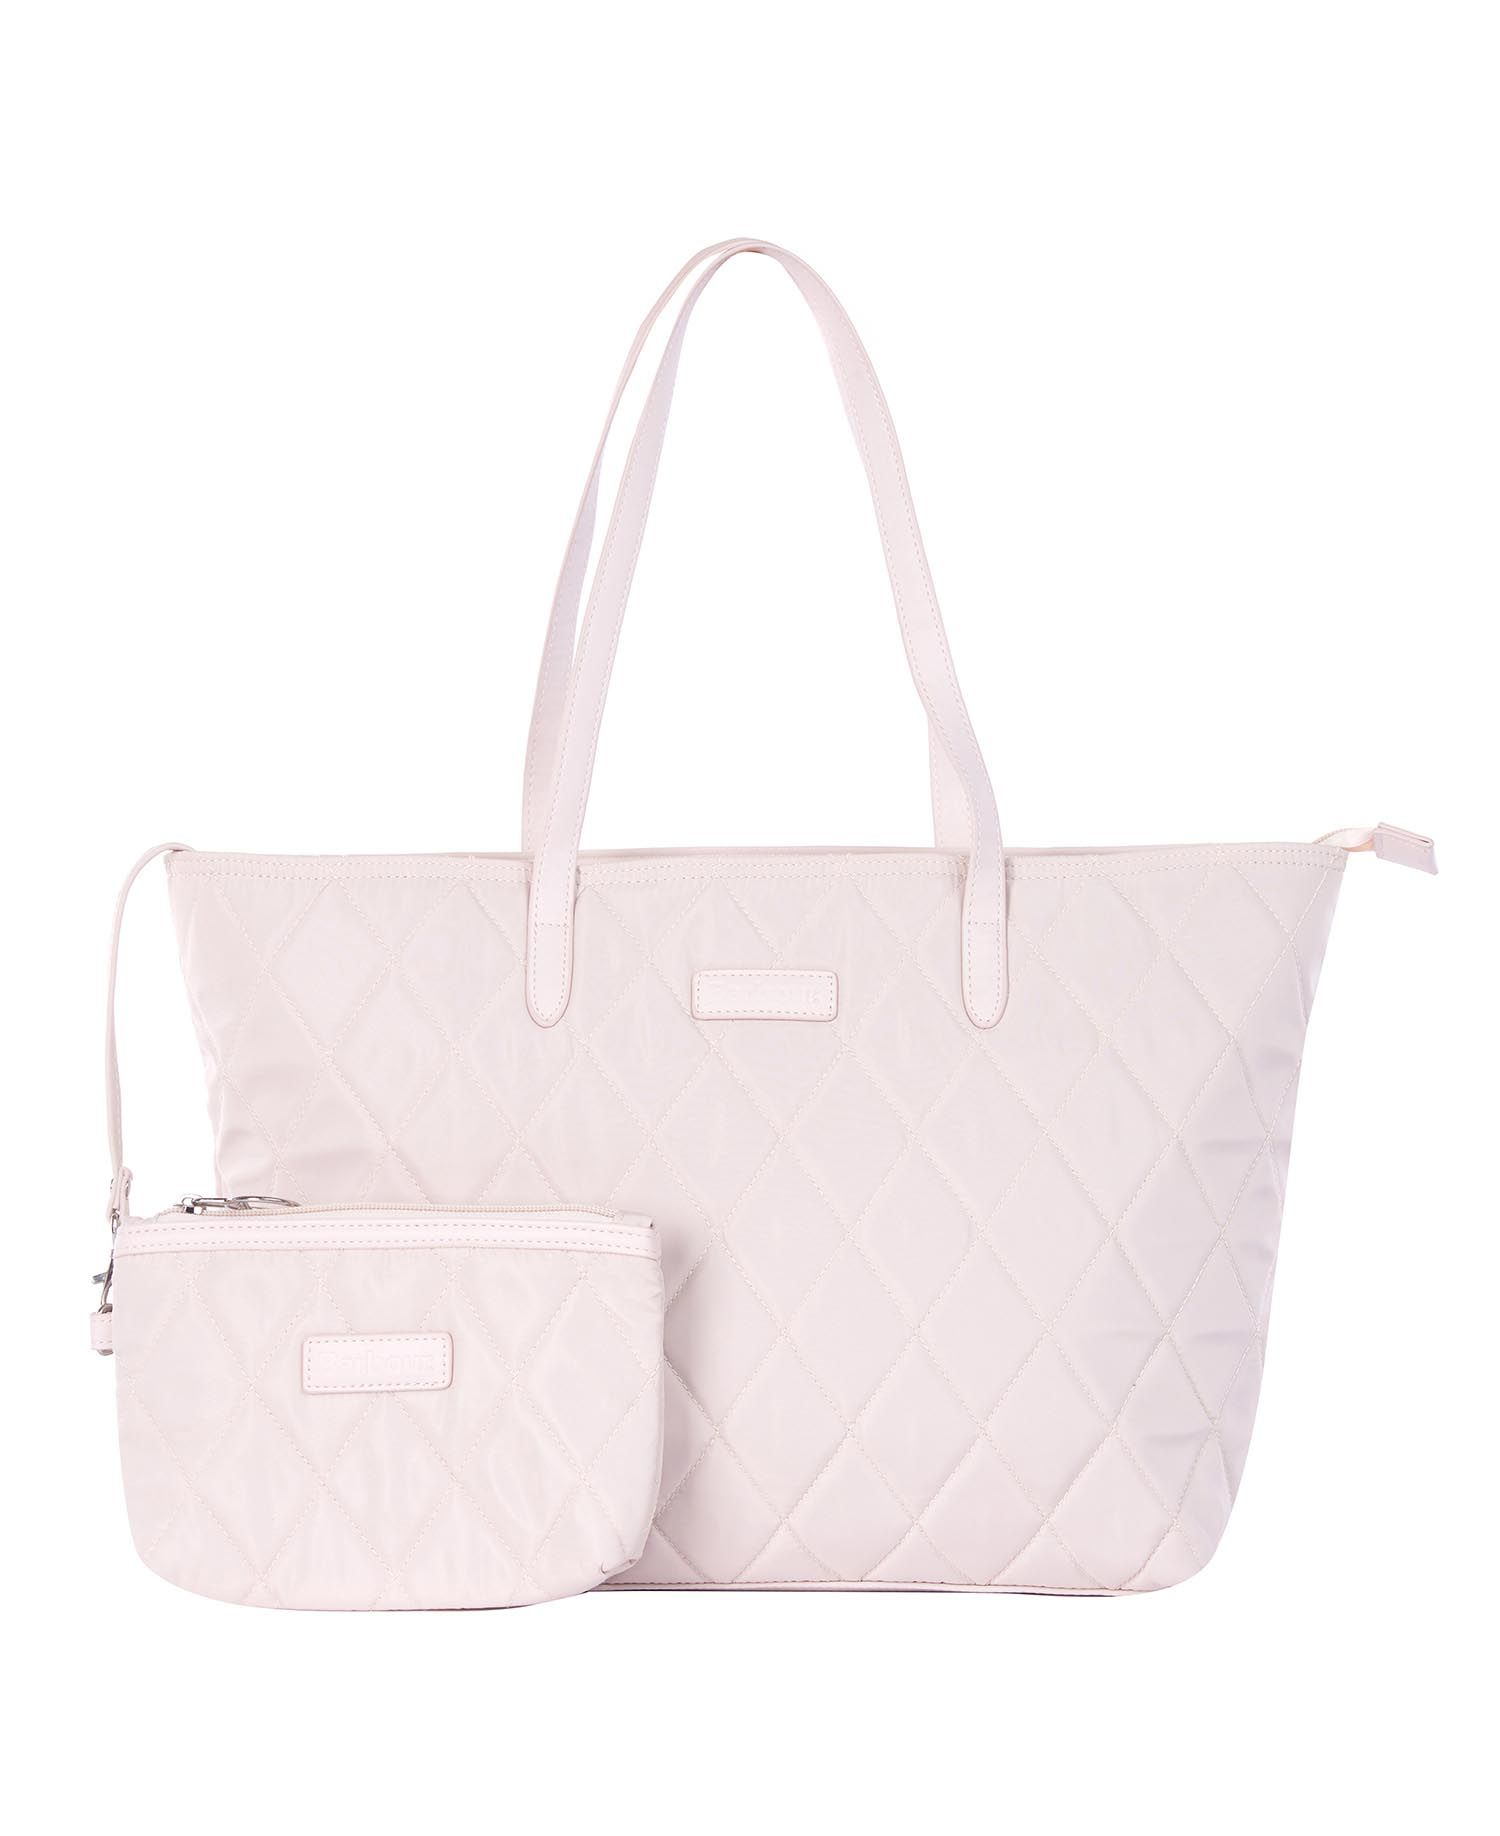 Barbour Witford Quilted Tote Bag Pink Barbour Lifestyle: From the Tartan Collection